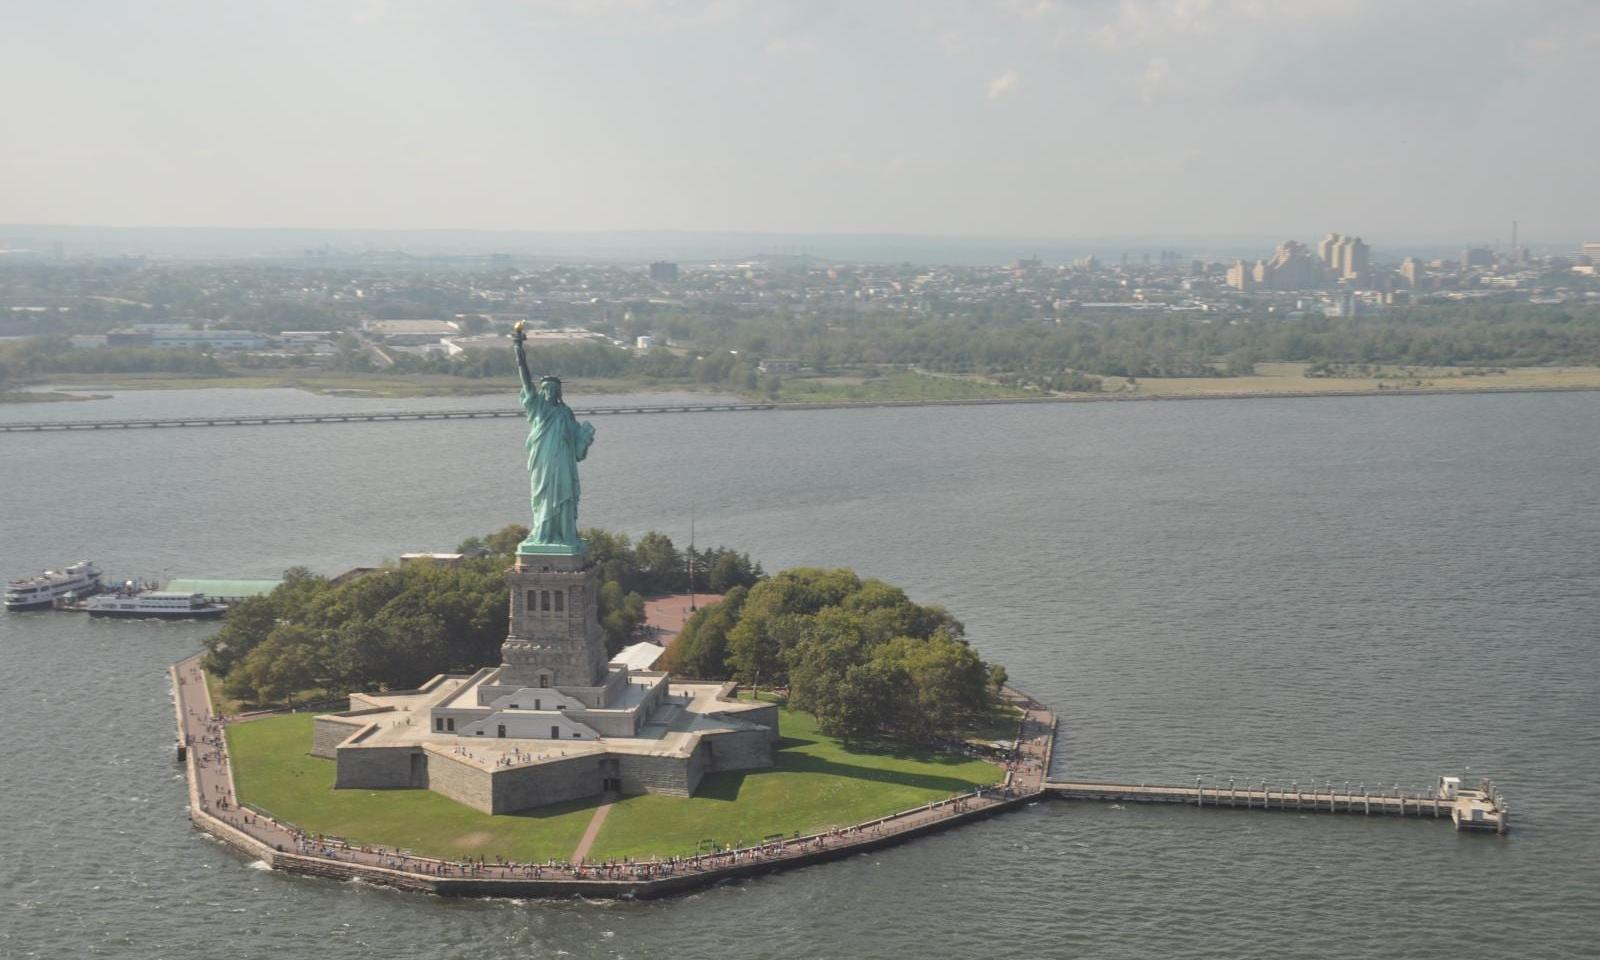 Adrenaline Helicopter Tours New York